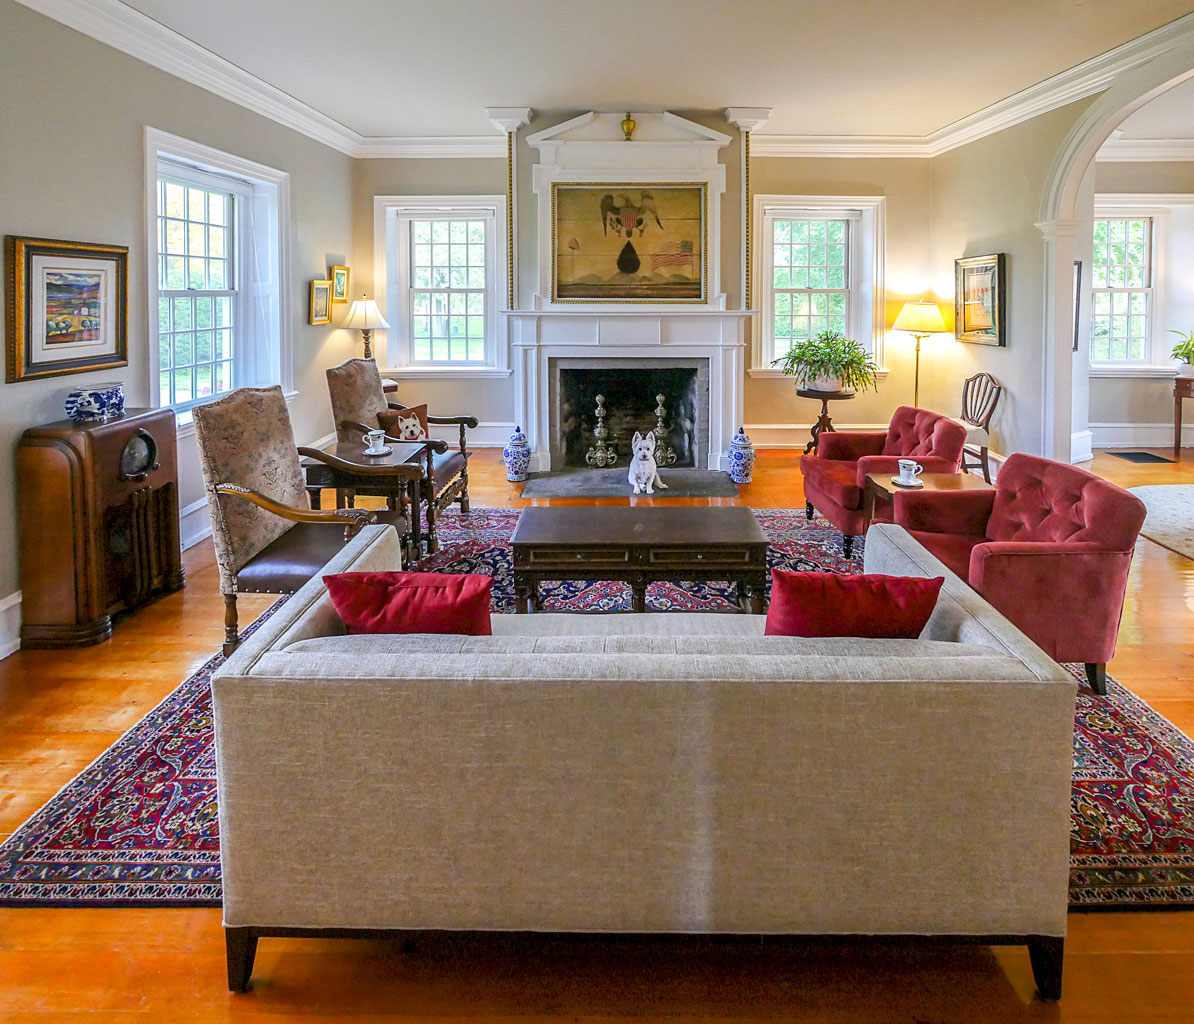 CHITTENDEN HOUSE featured in OLD HOUSE JOURNAL